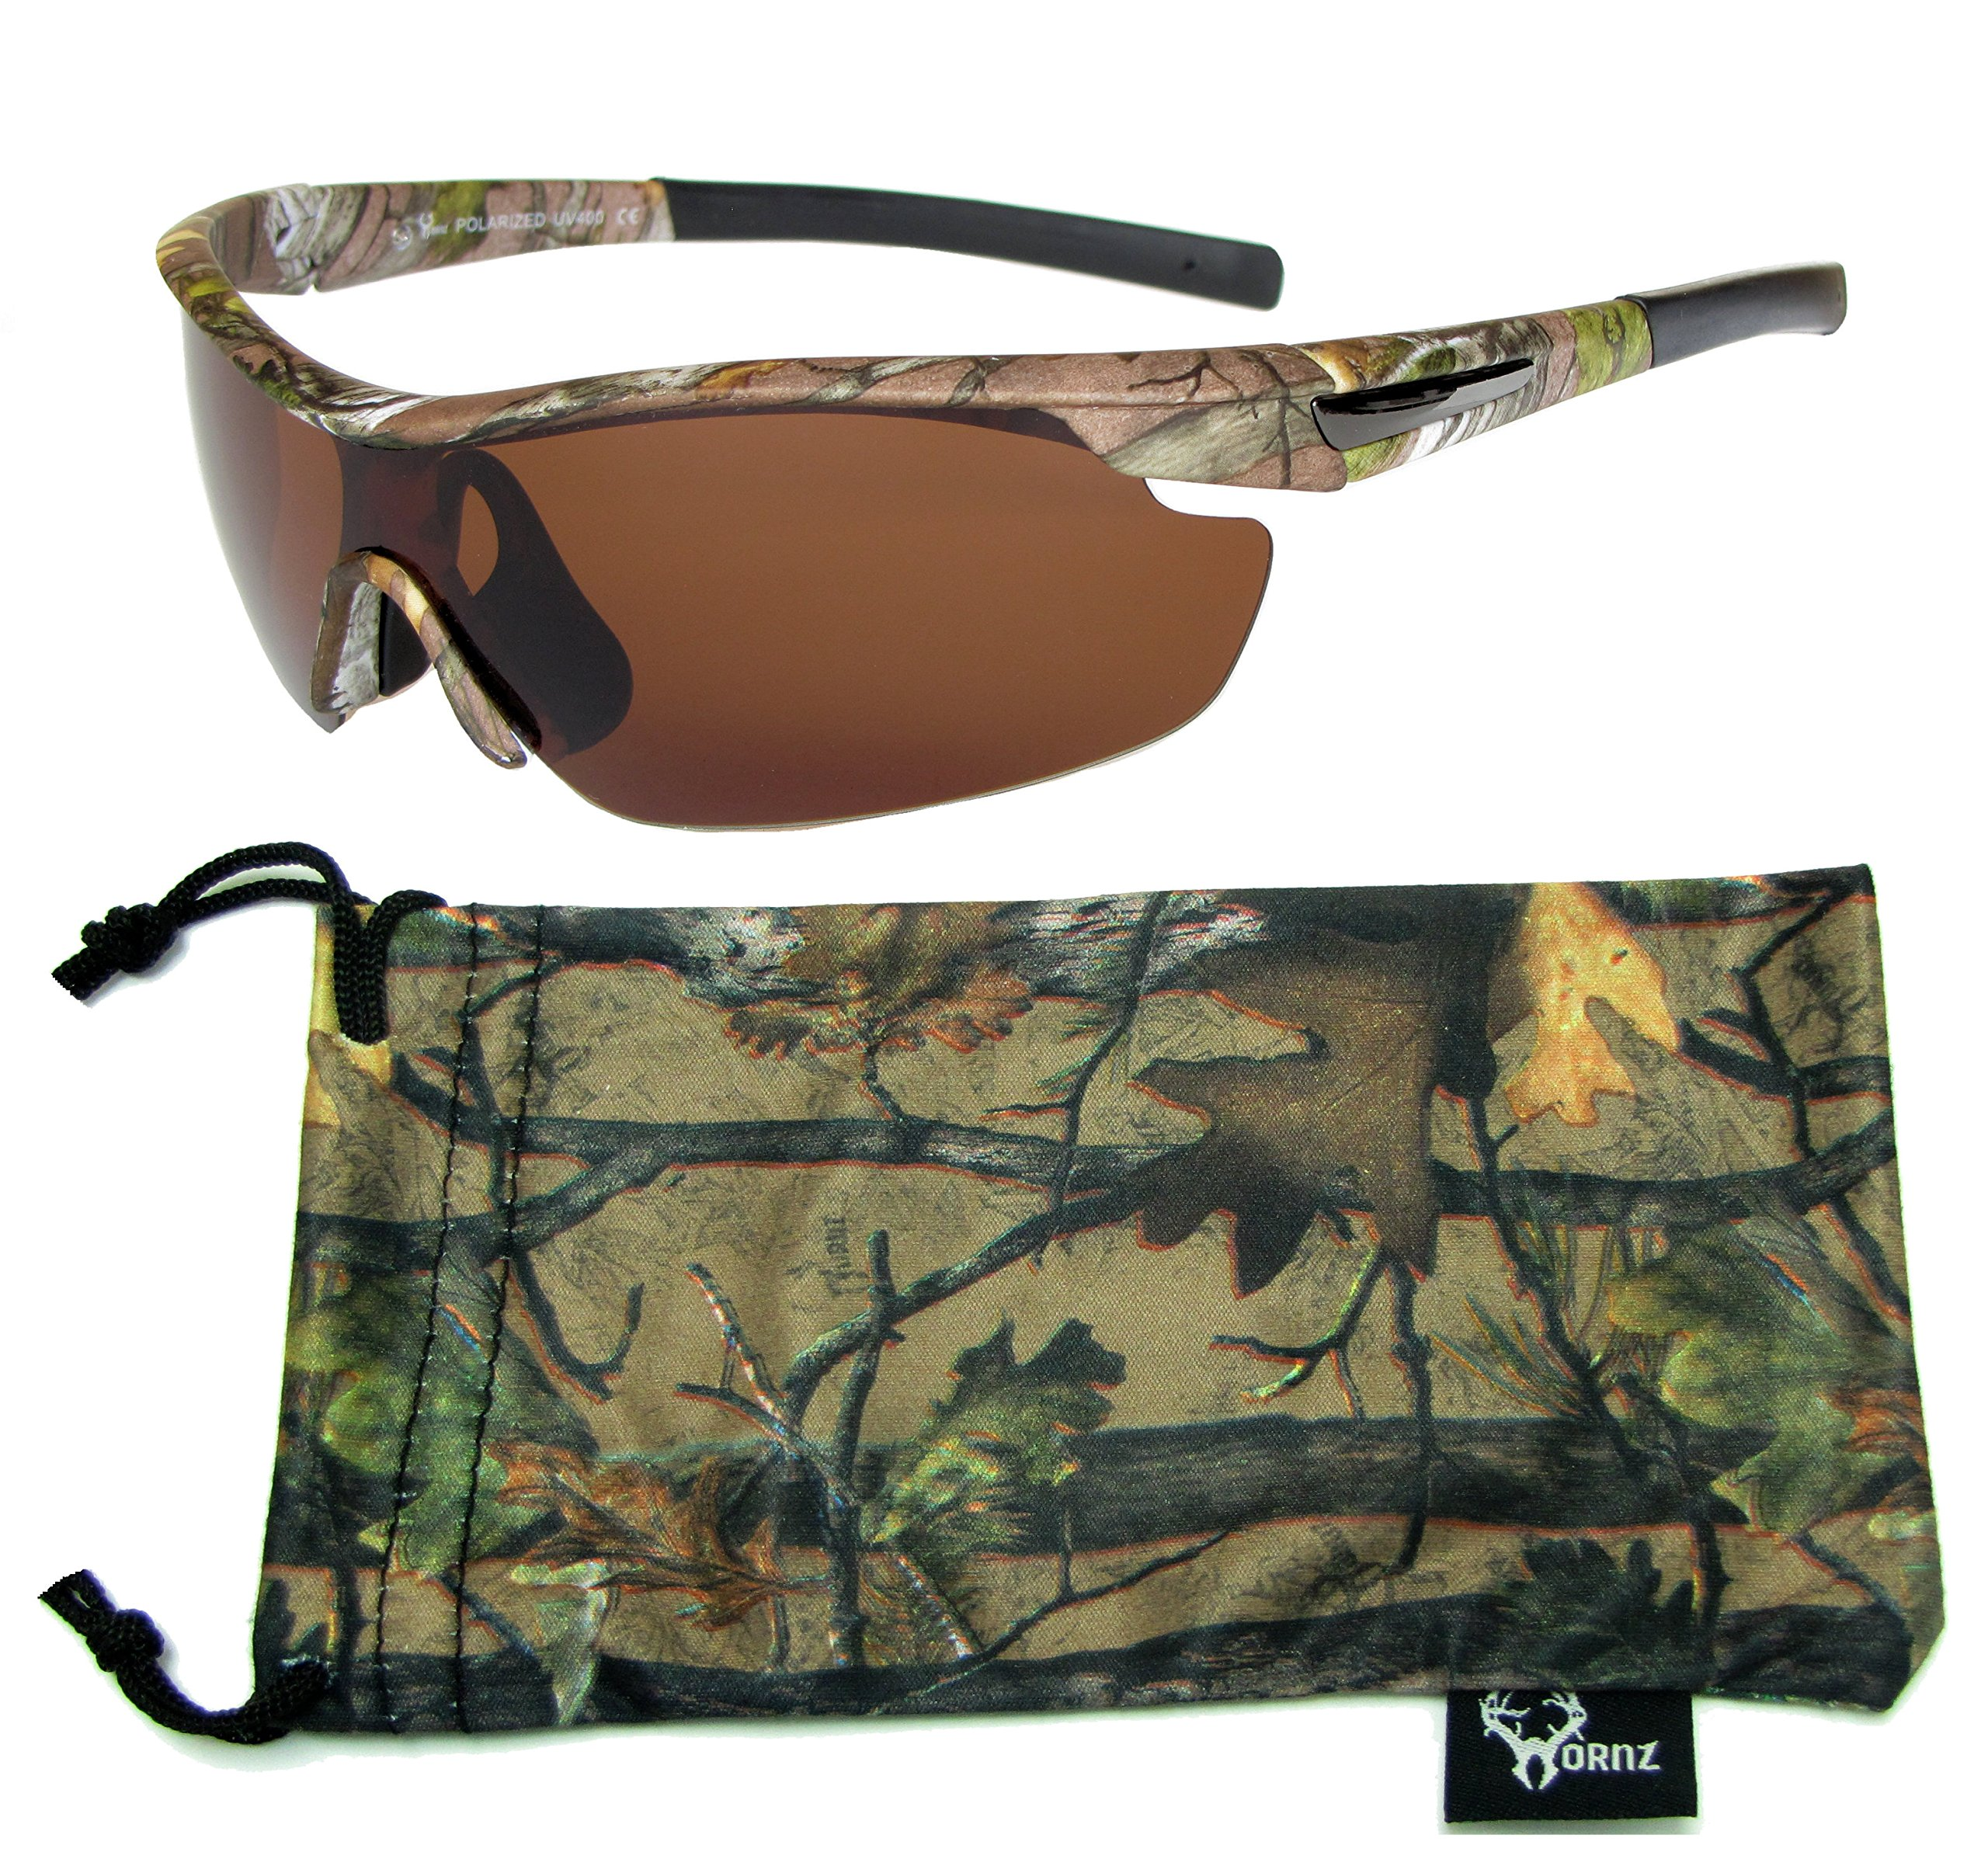 Hornz Brown Forrest Camouflage Polarized Sunglasses for Men Wrap Around Sport Frame & Free Matching Microfiber Pouch - Brown Camo Frame - Amber Lens